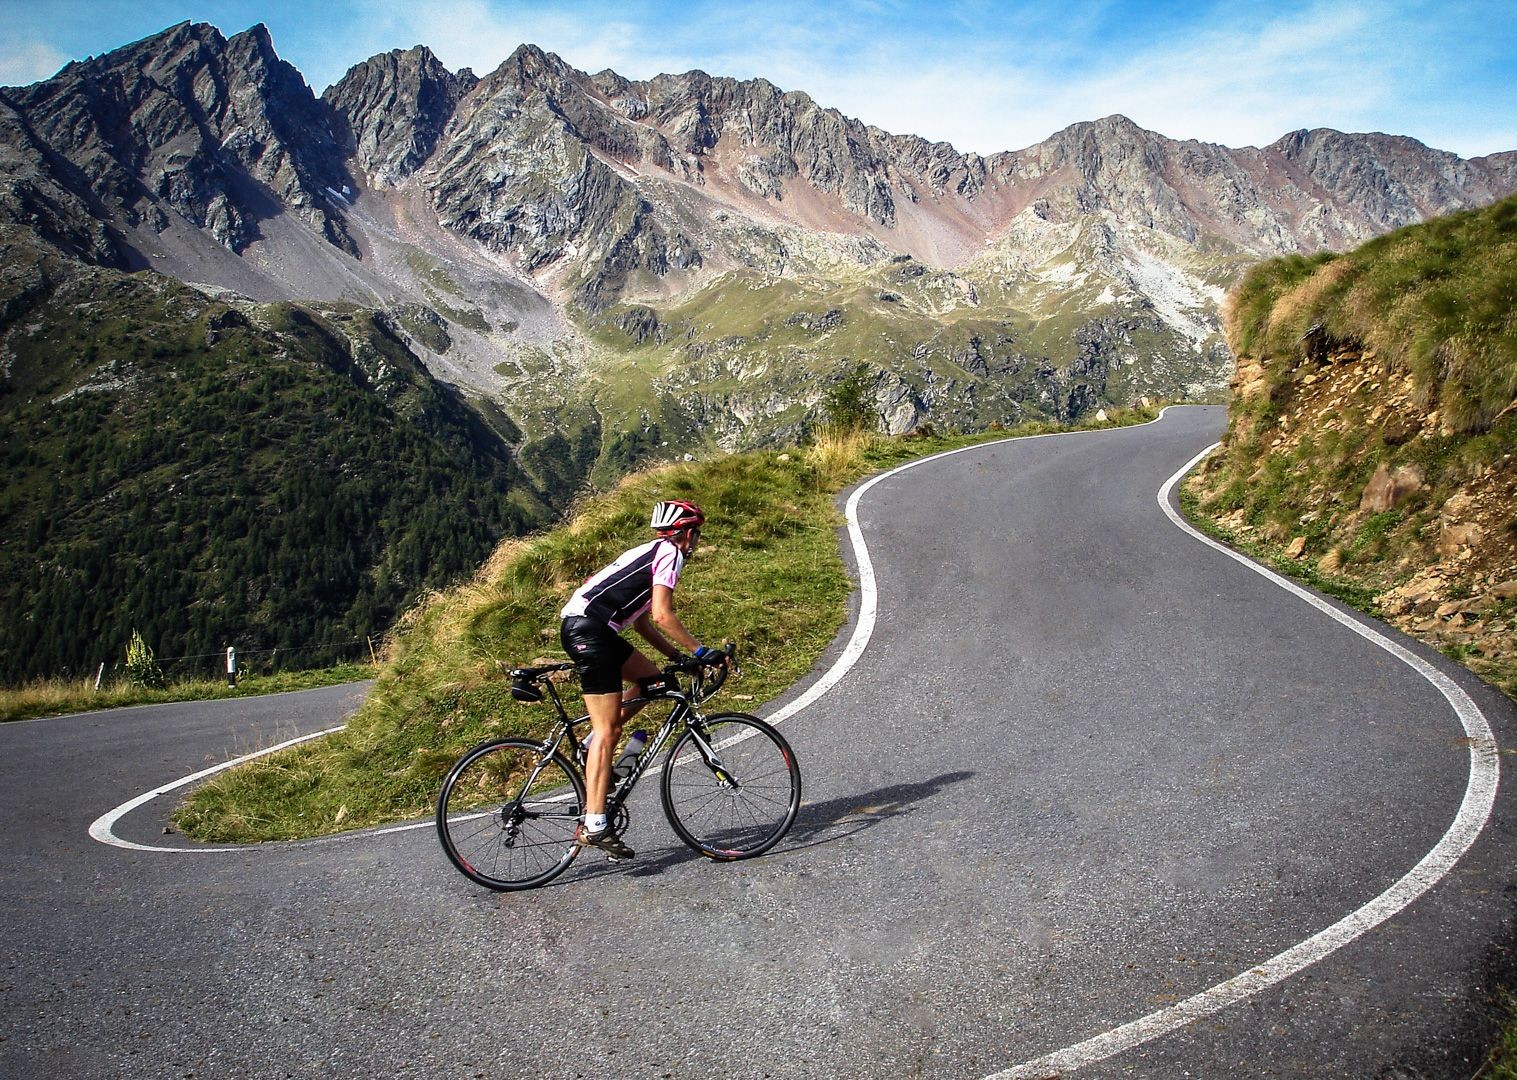 stevilo-pass-italy-road-cycling-guided-tour.jpg - Italy - Alps and Dolomites - Giants of the Giro - Guided Road Cycling Holiday - Italia Road Cycling